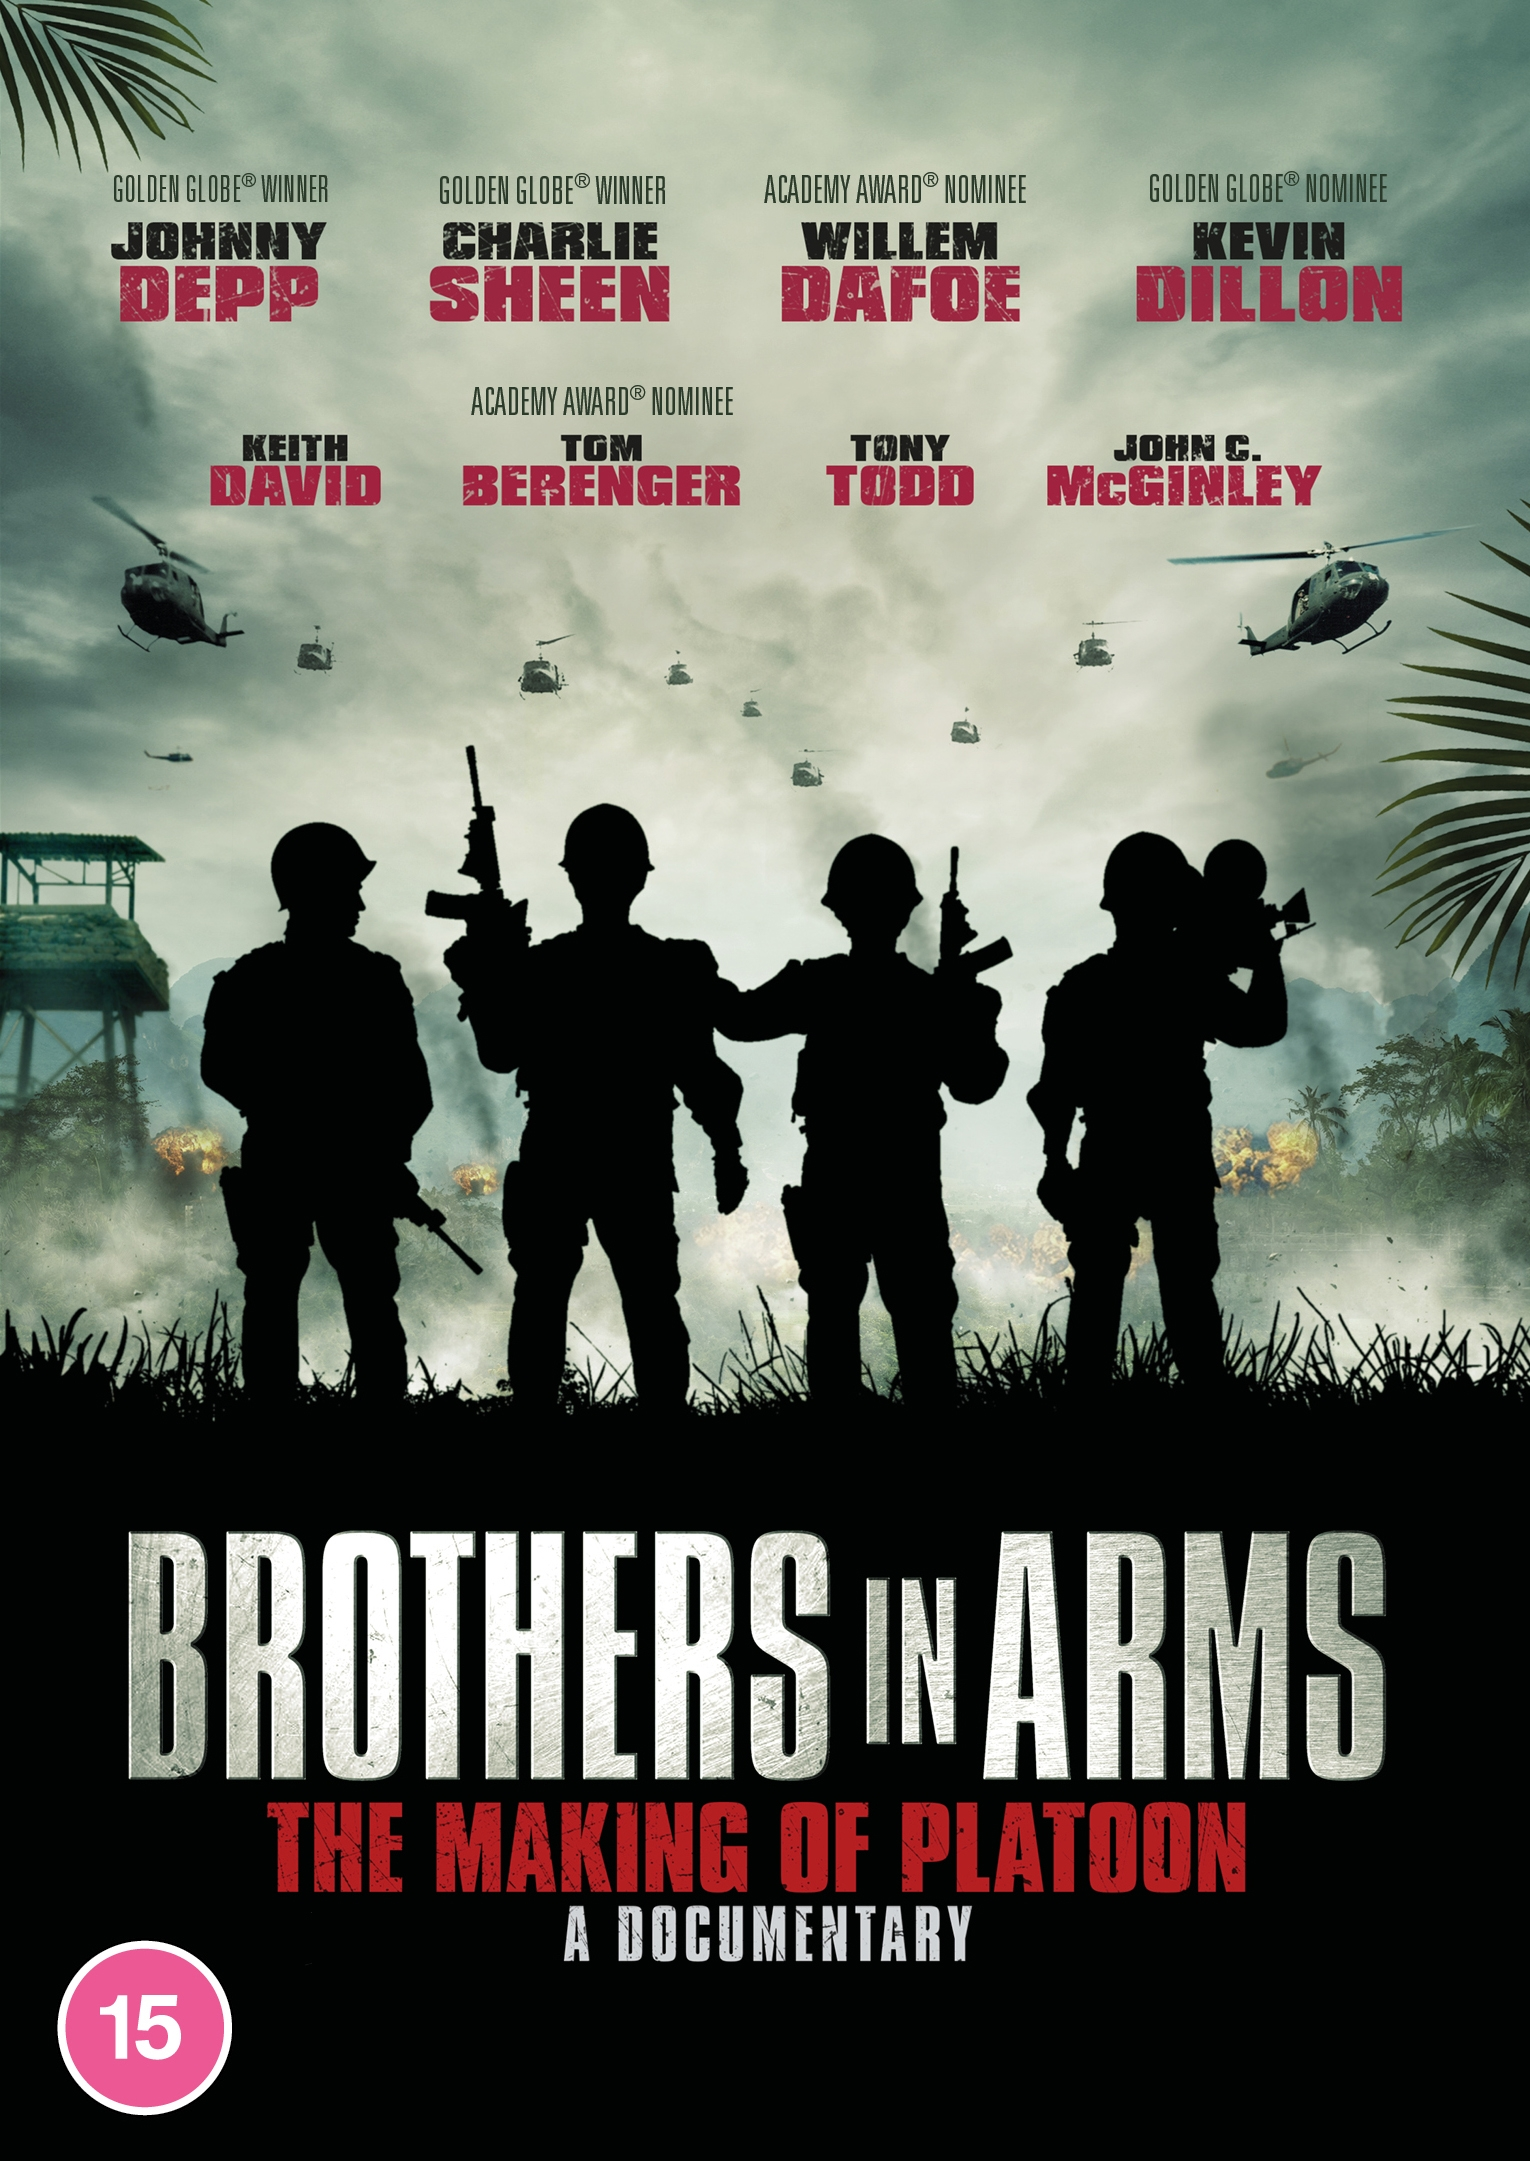 BROTHERS IN ARMS: THE MAKING OF PLATOON Documentary Comes to DVD & Digital from Kaleidoscope Home Entertainment (UK / 5 October)